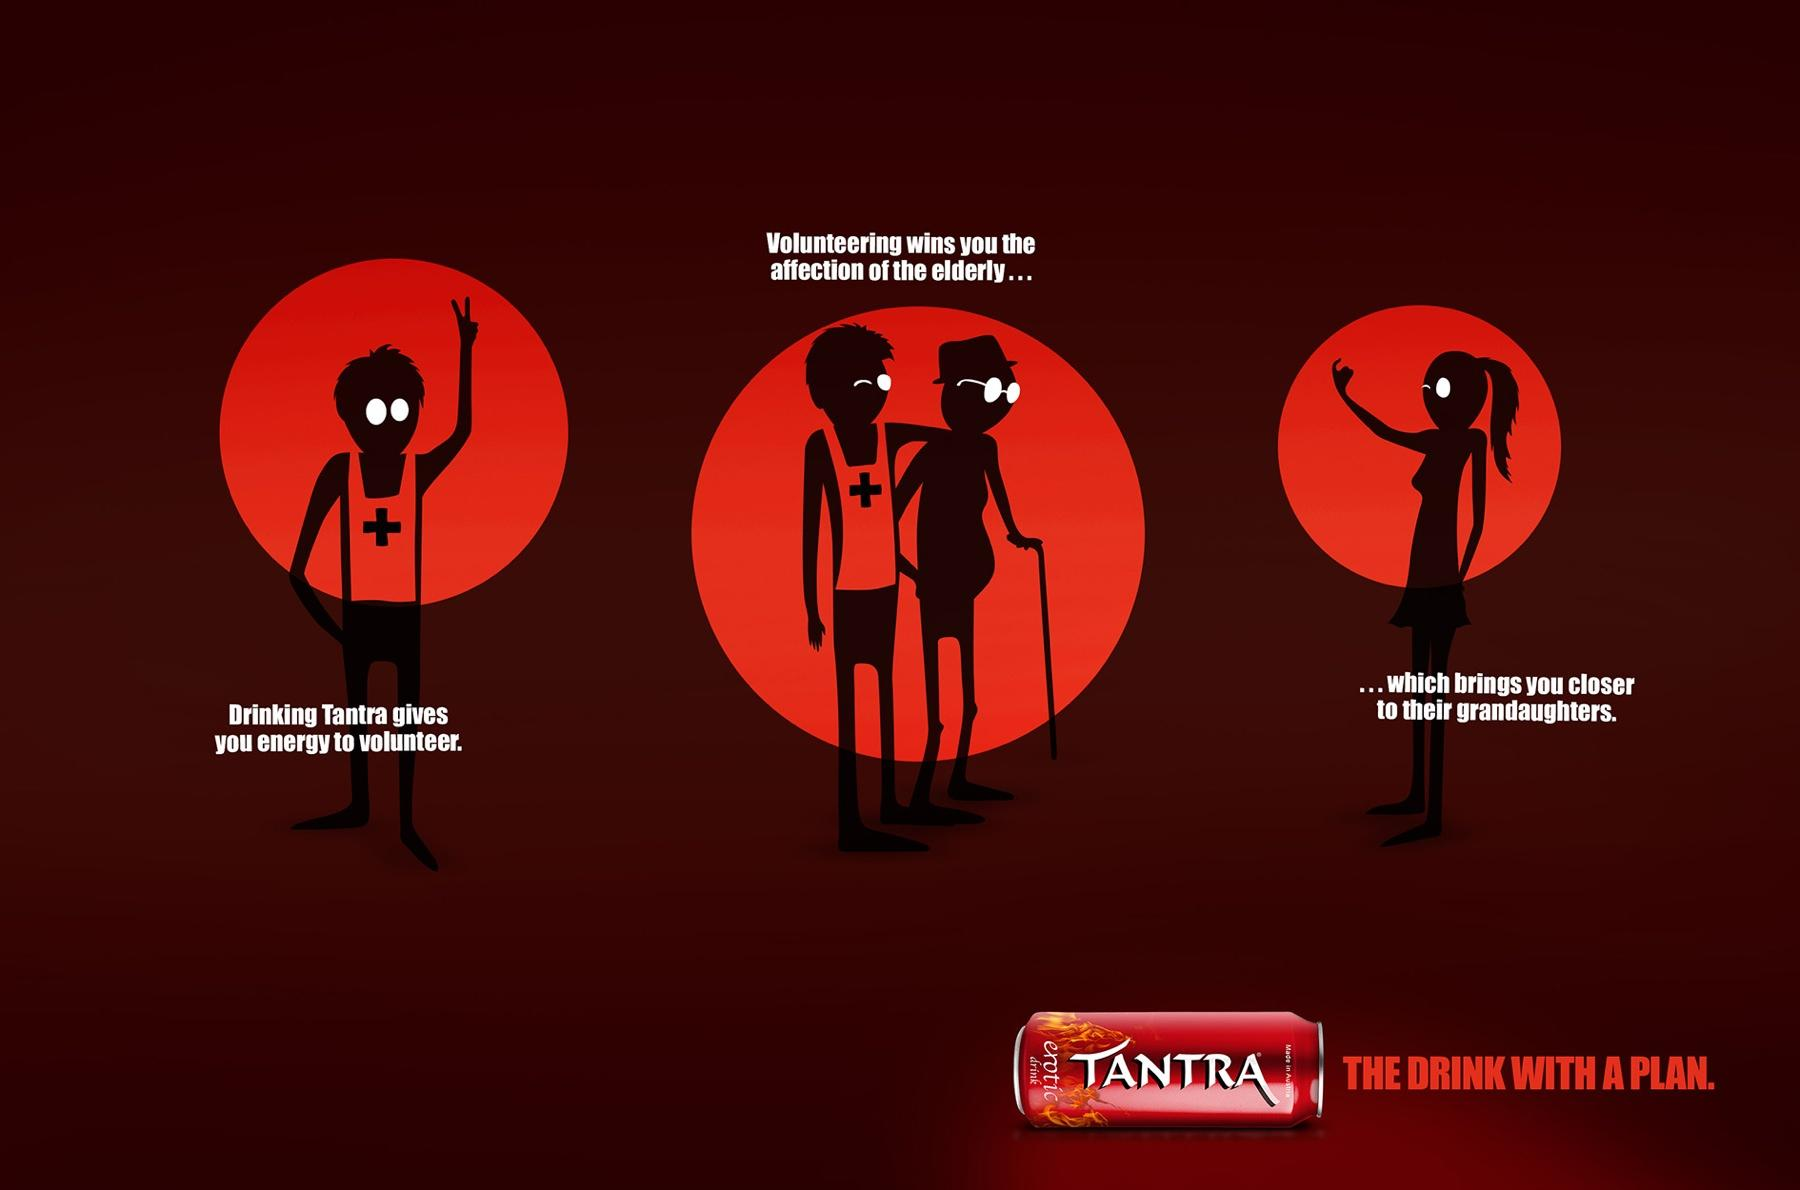 Tantra Erotic Drink Print Ad -  The drink with a plan, 2